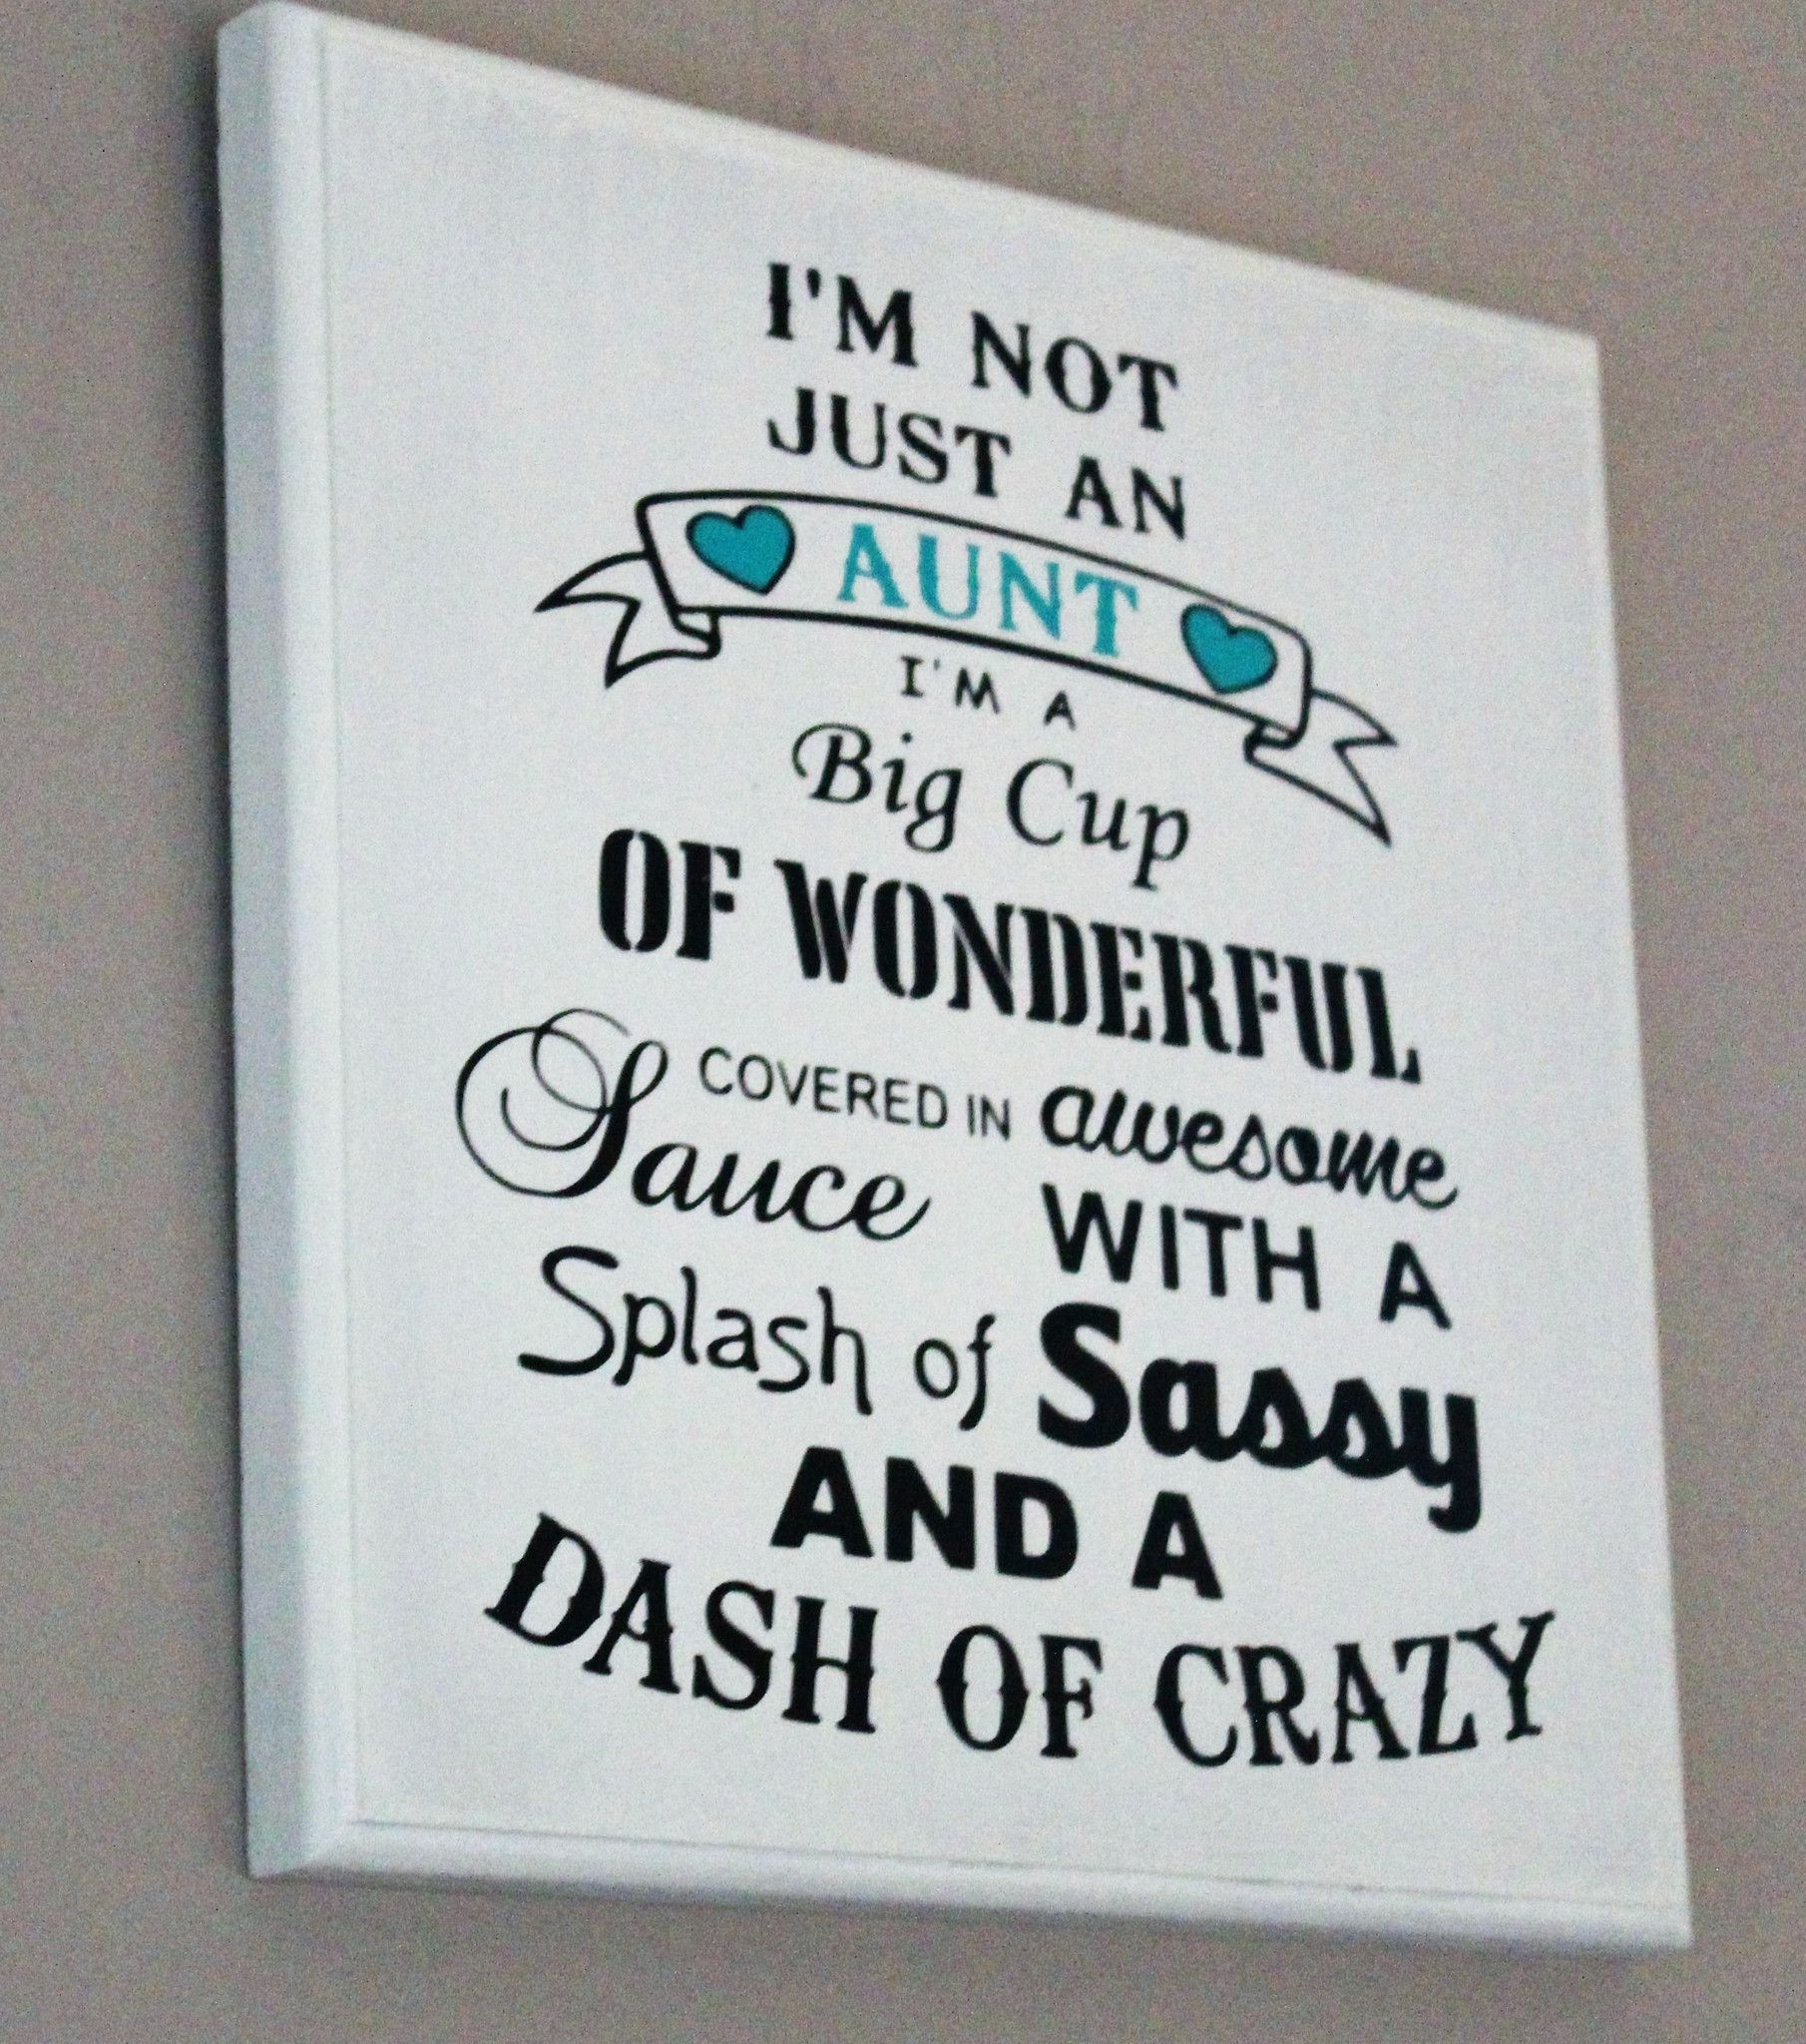 Crazy Aunt Sign Made Of Wood | Aunt gifts, Crazy aunt, Diy ...